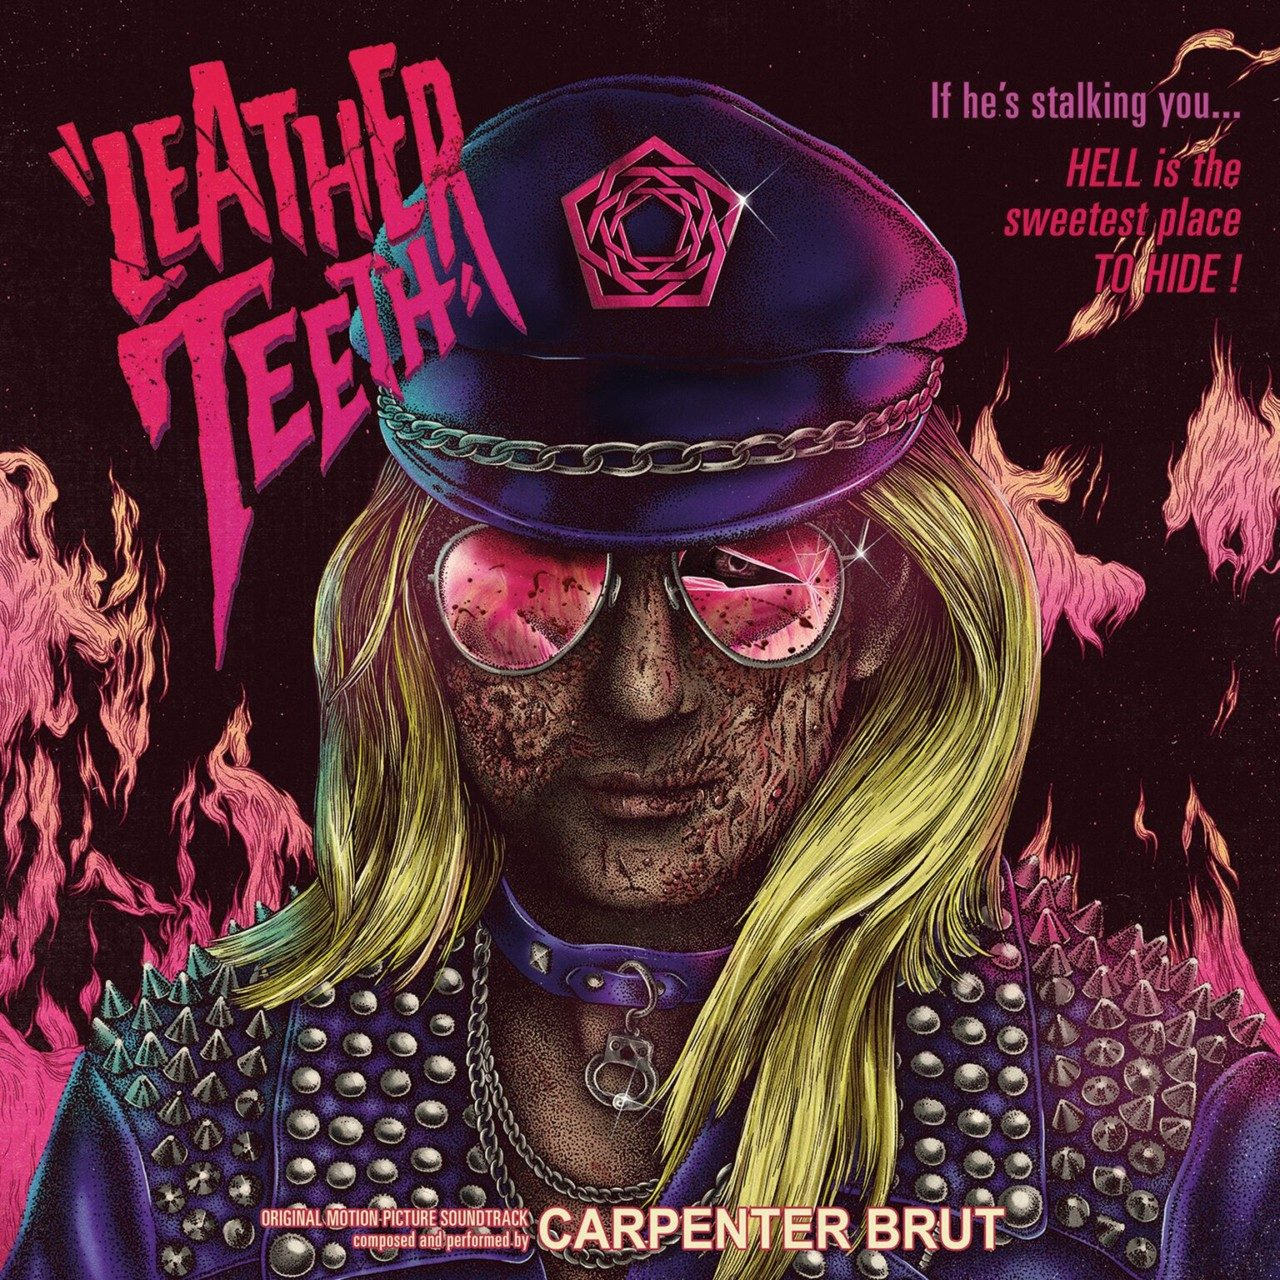 Carpenter Brut : peur bleue en terres rouges